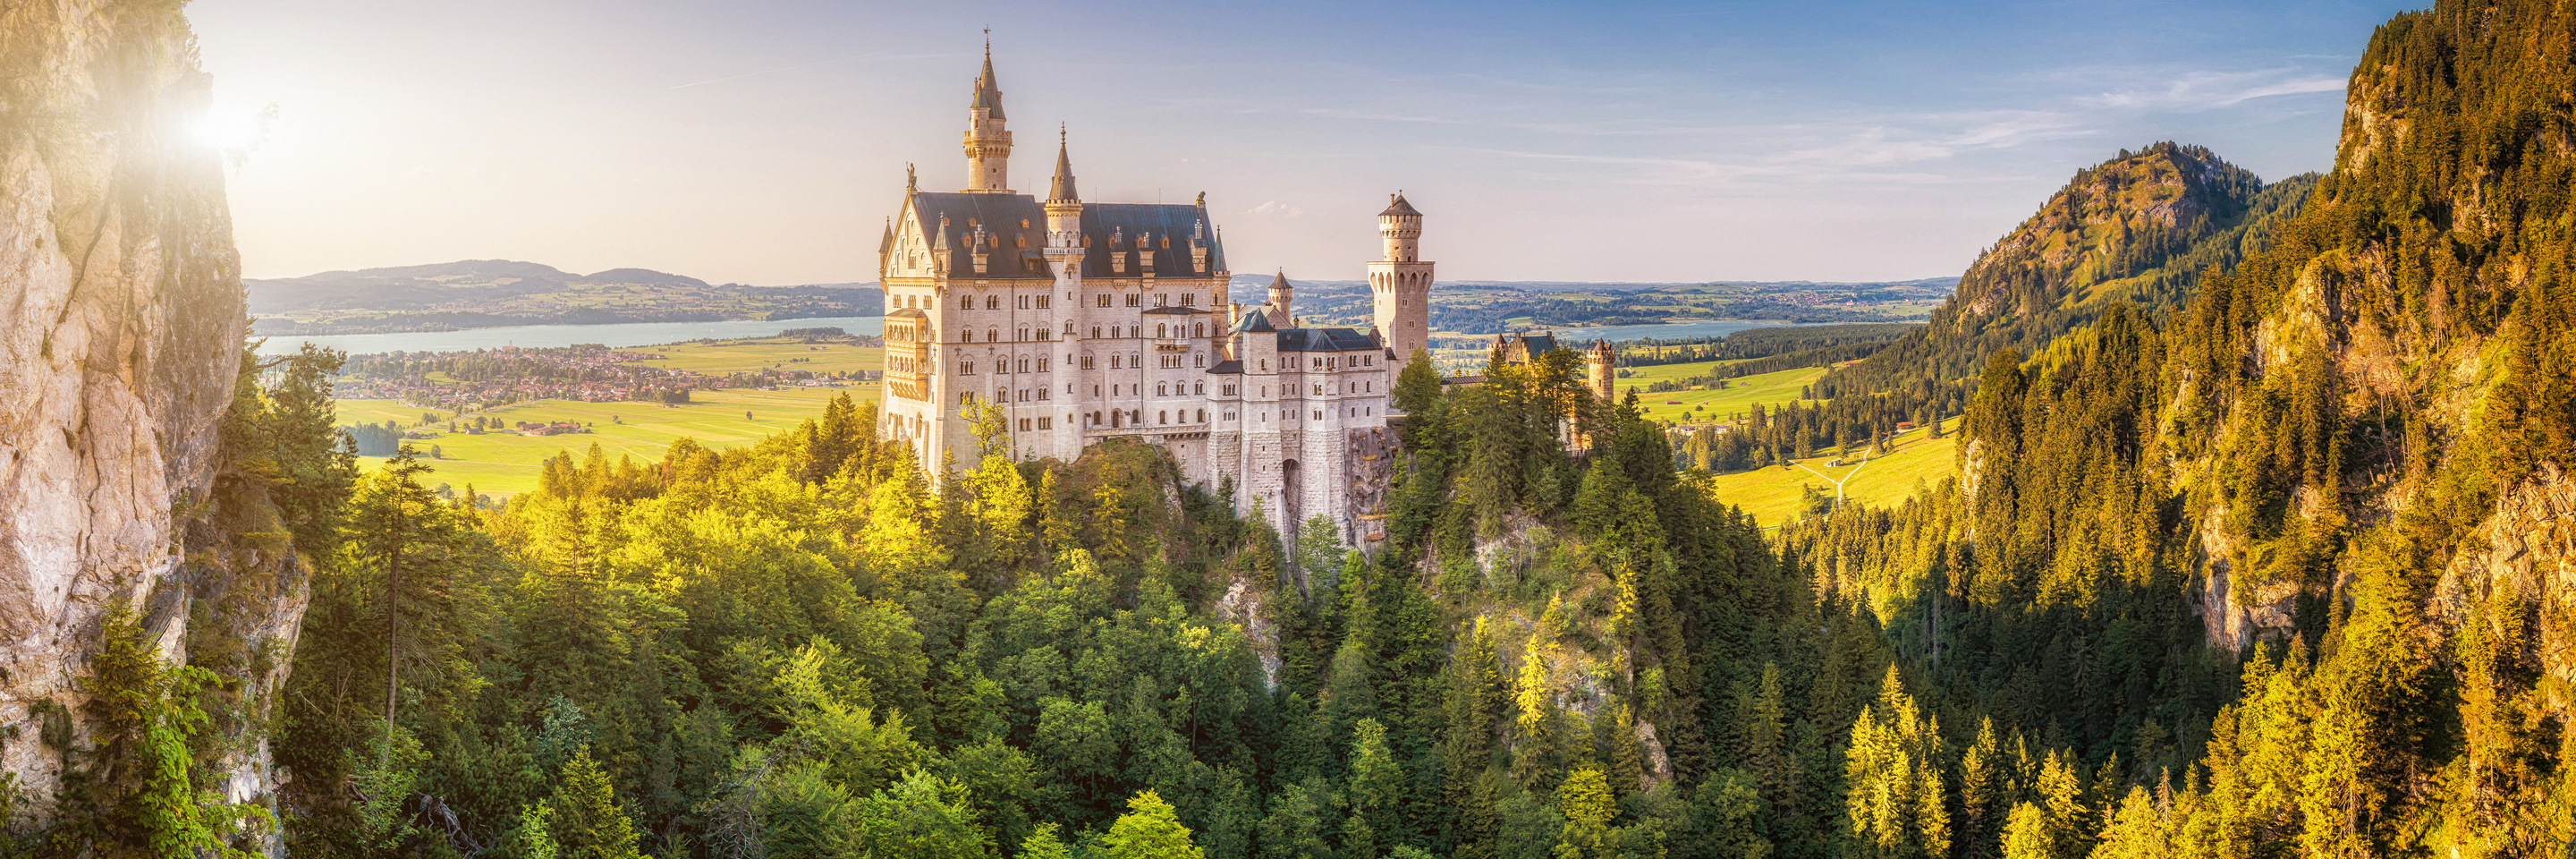 Danube Symphony with 2 Nights in Munich & 1 Night in Budapest (Eastbound)